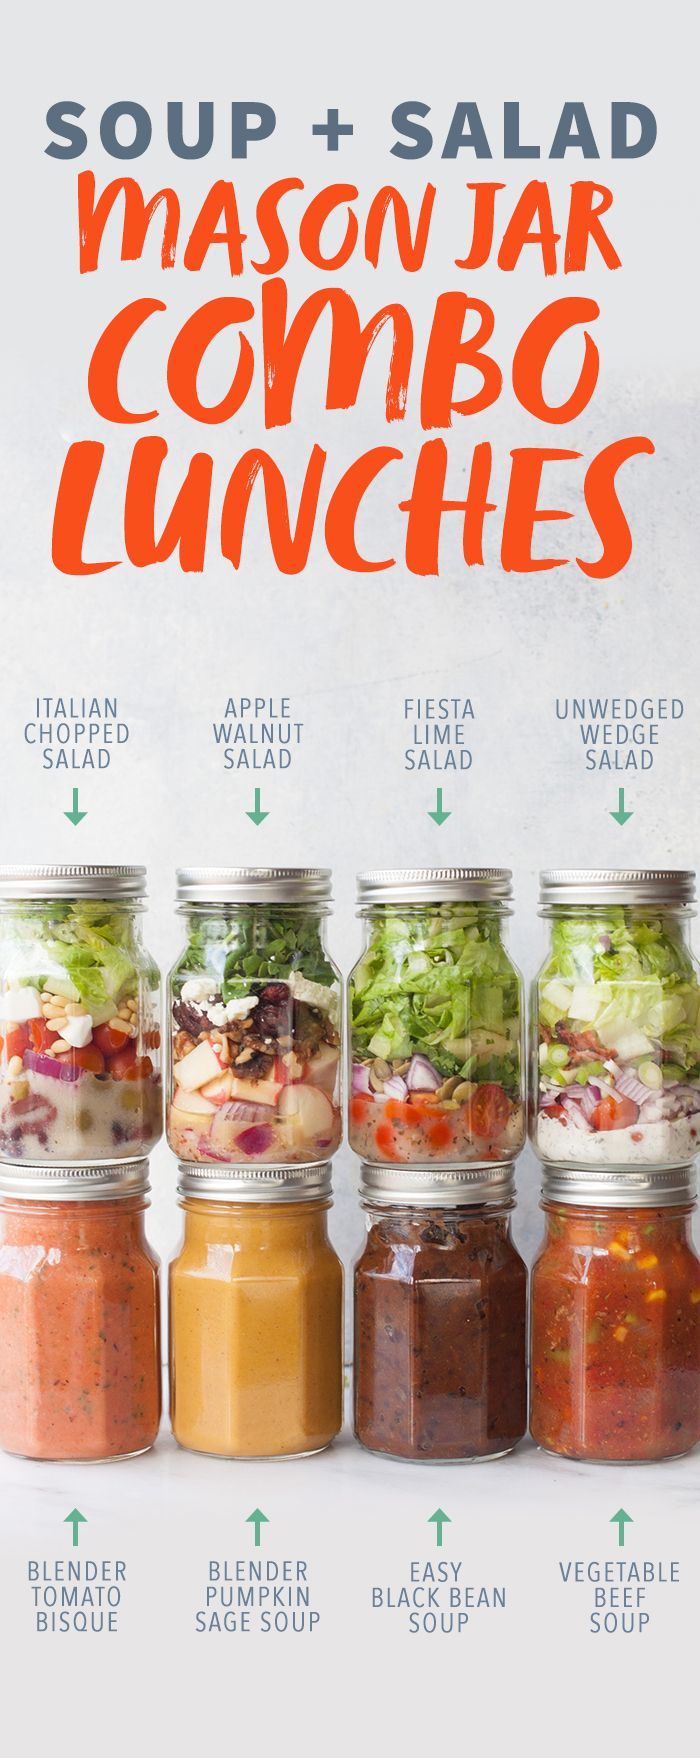 Soup and Salad Mason Jar Combo Lunches